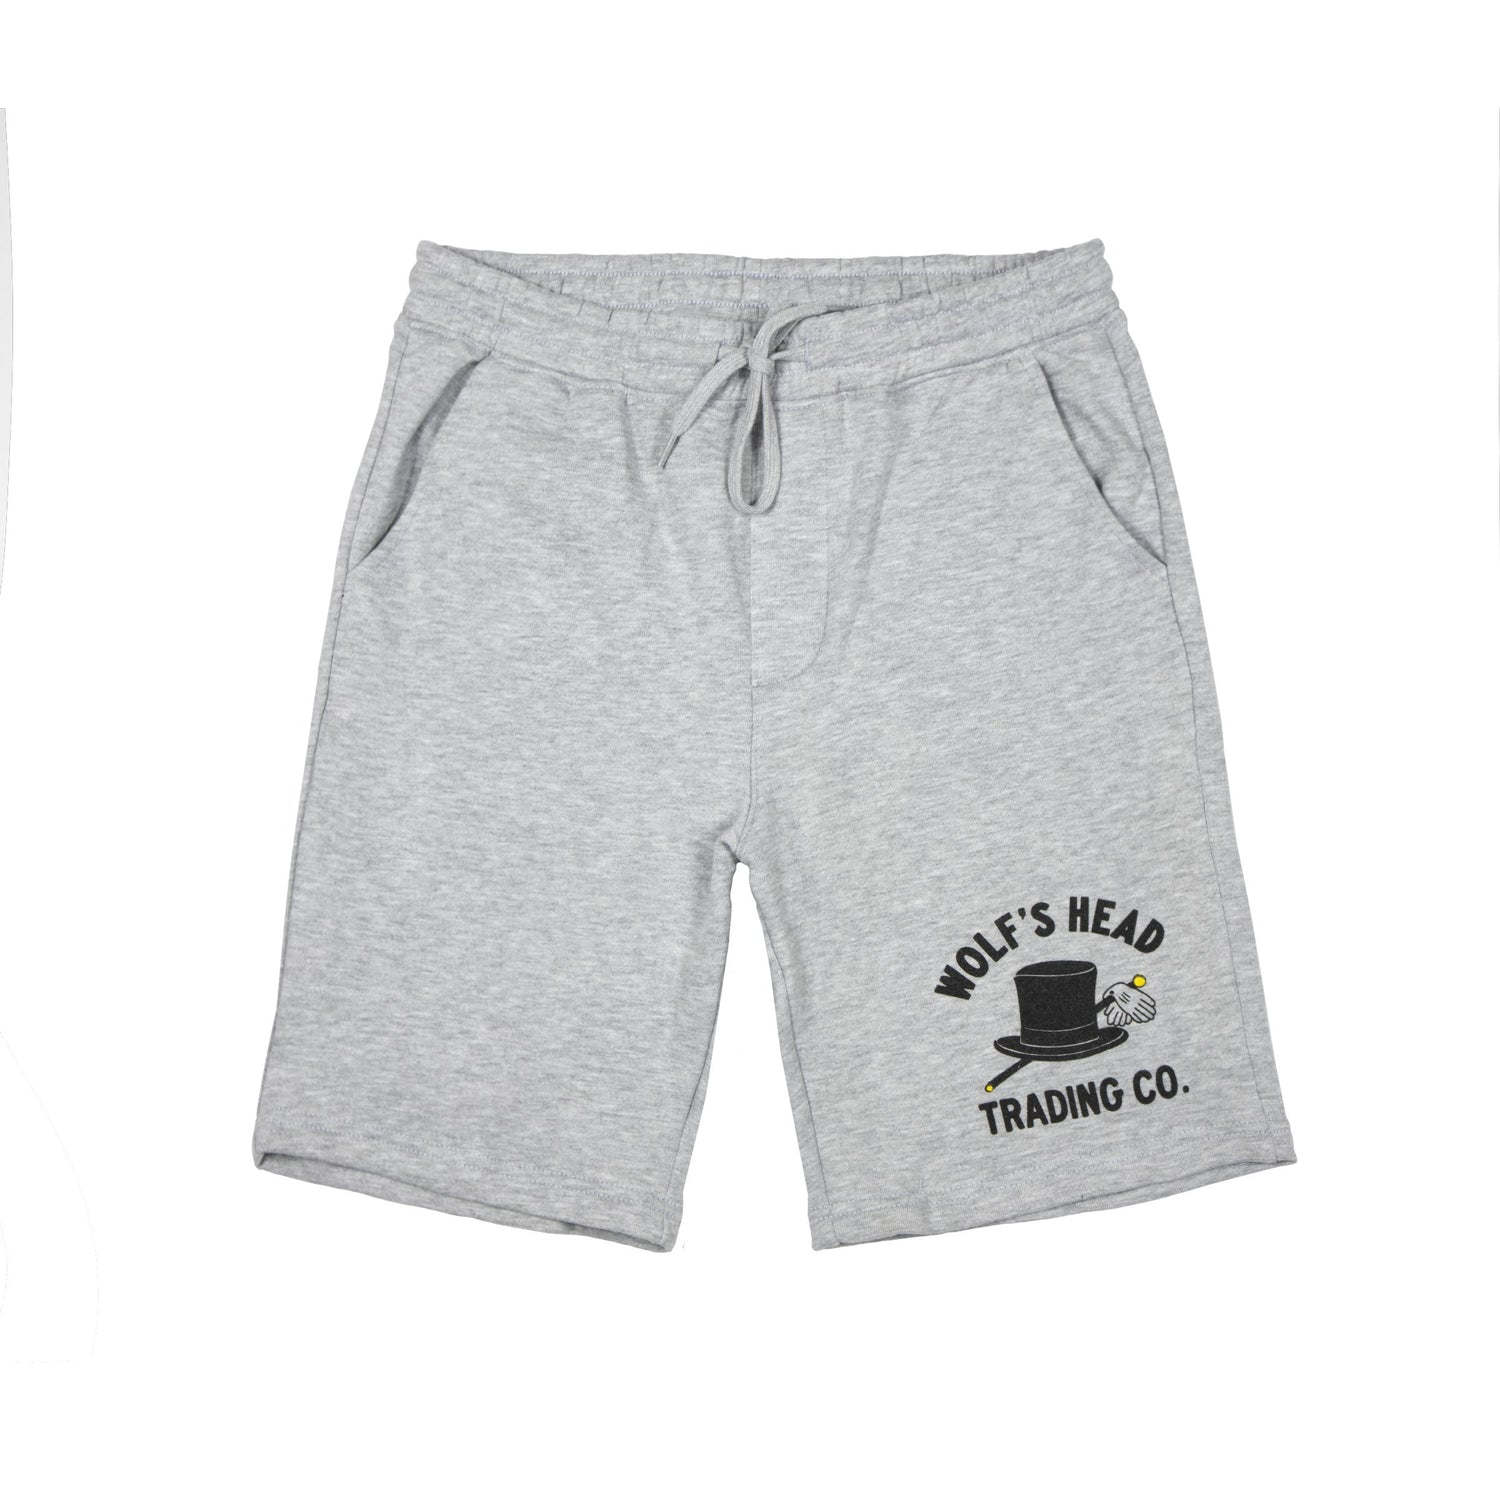 Wolf's Head Car Club Shorts - Heather Grey